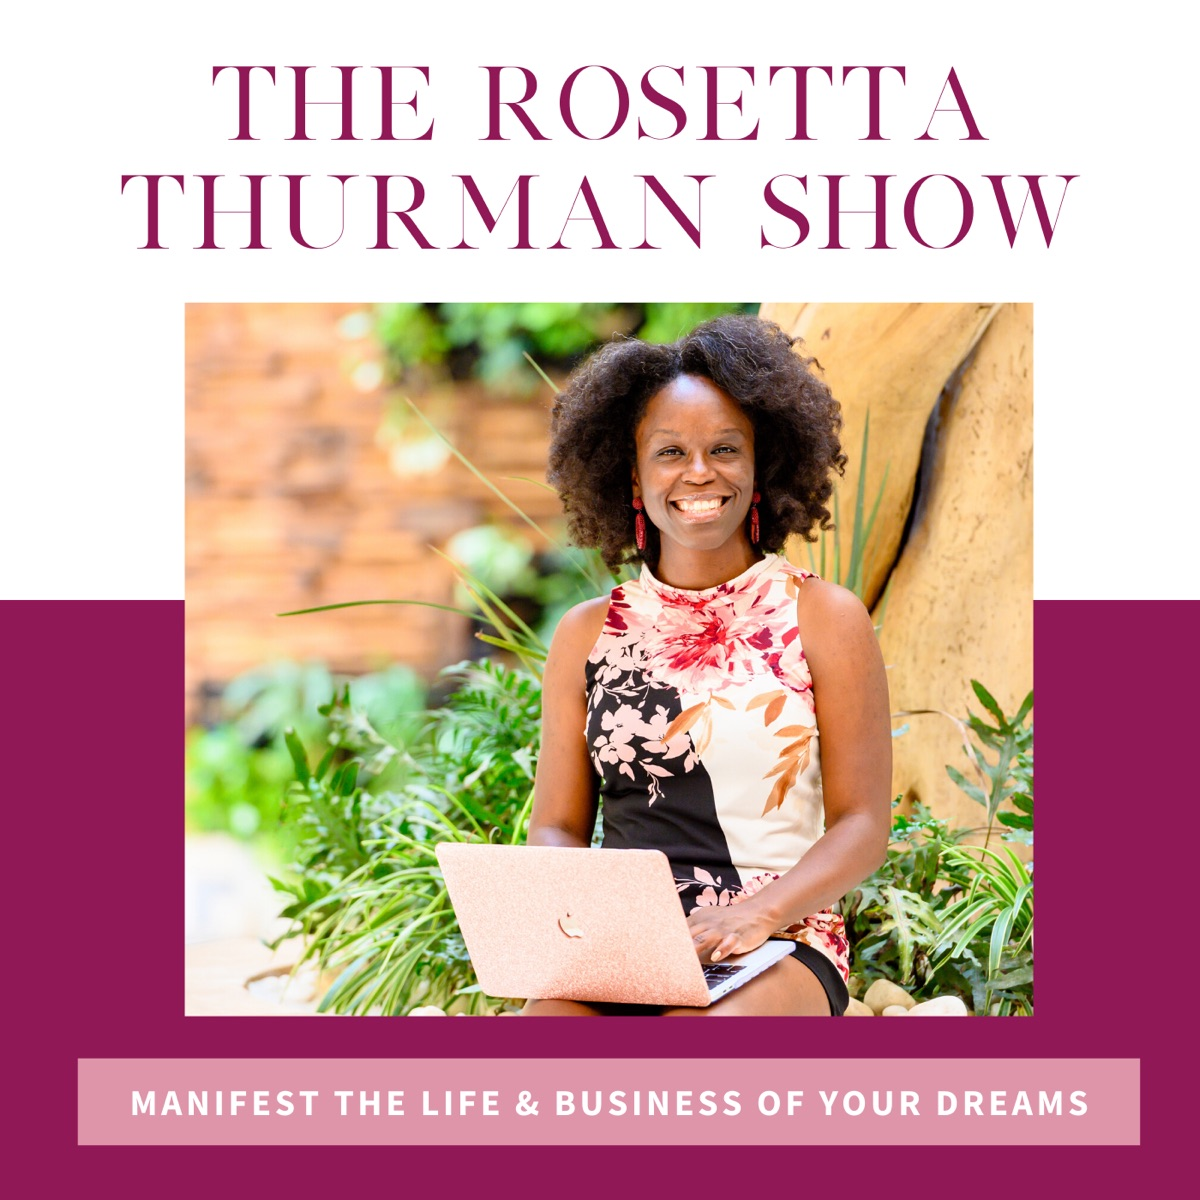 The Rosetta Thurman Show